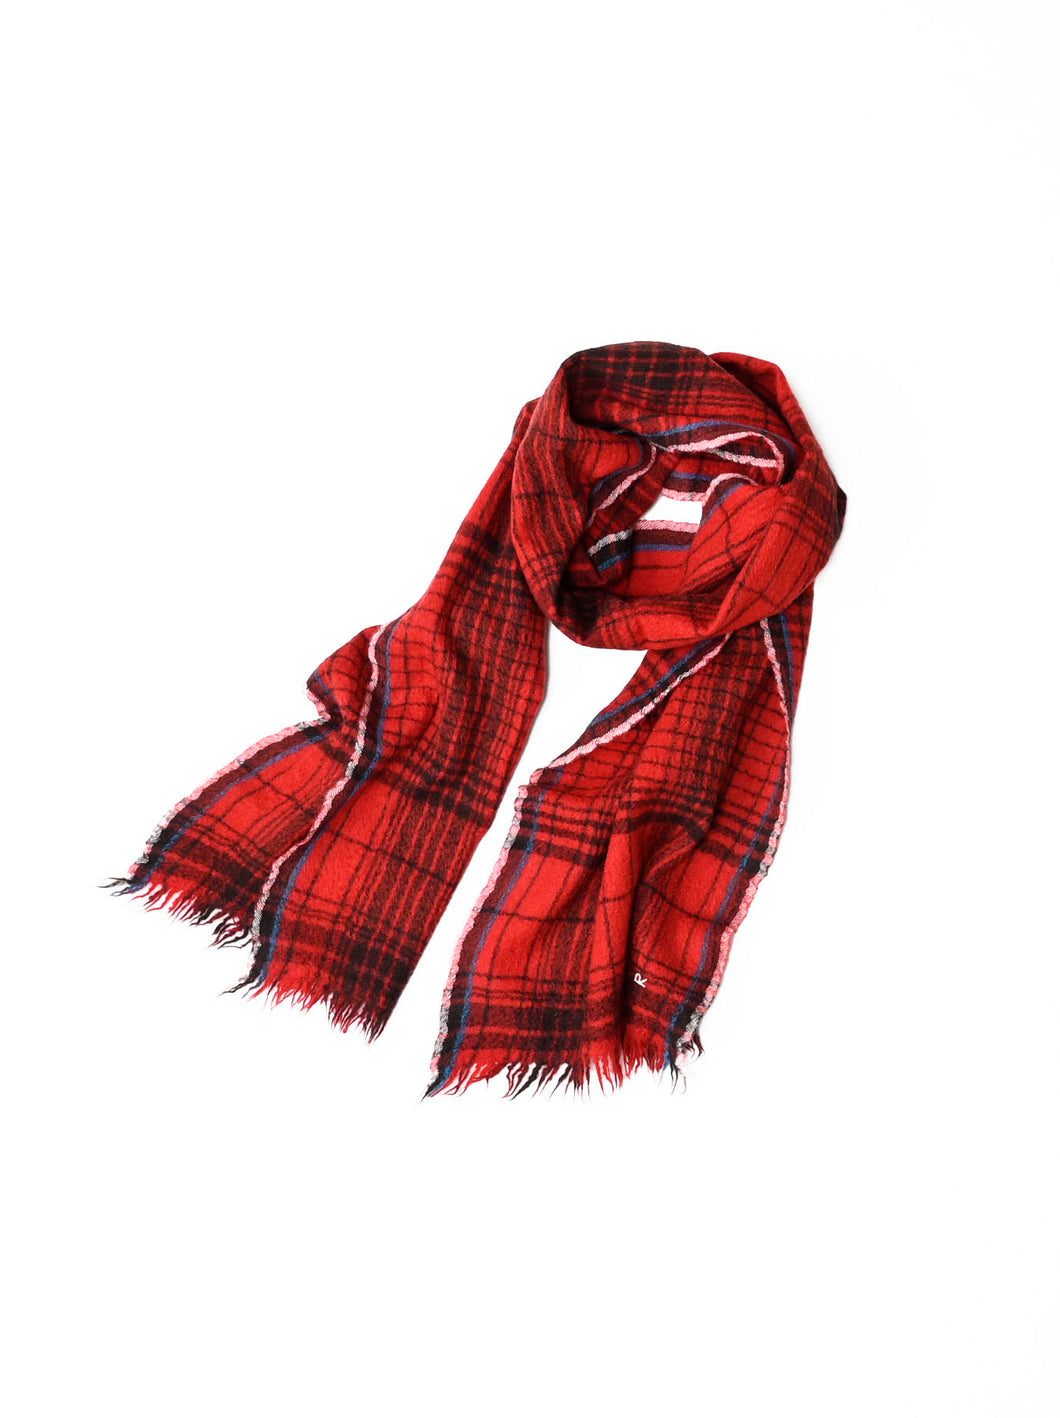 Indian Merino Wool Cashmere Big Tartan Muffler in red